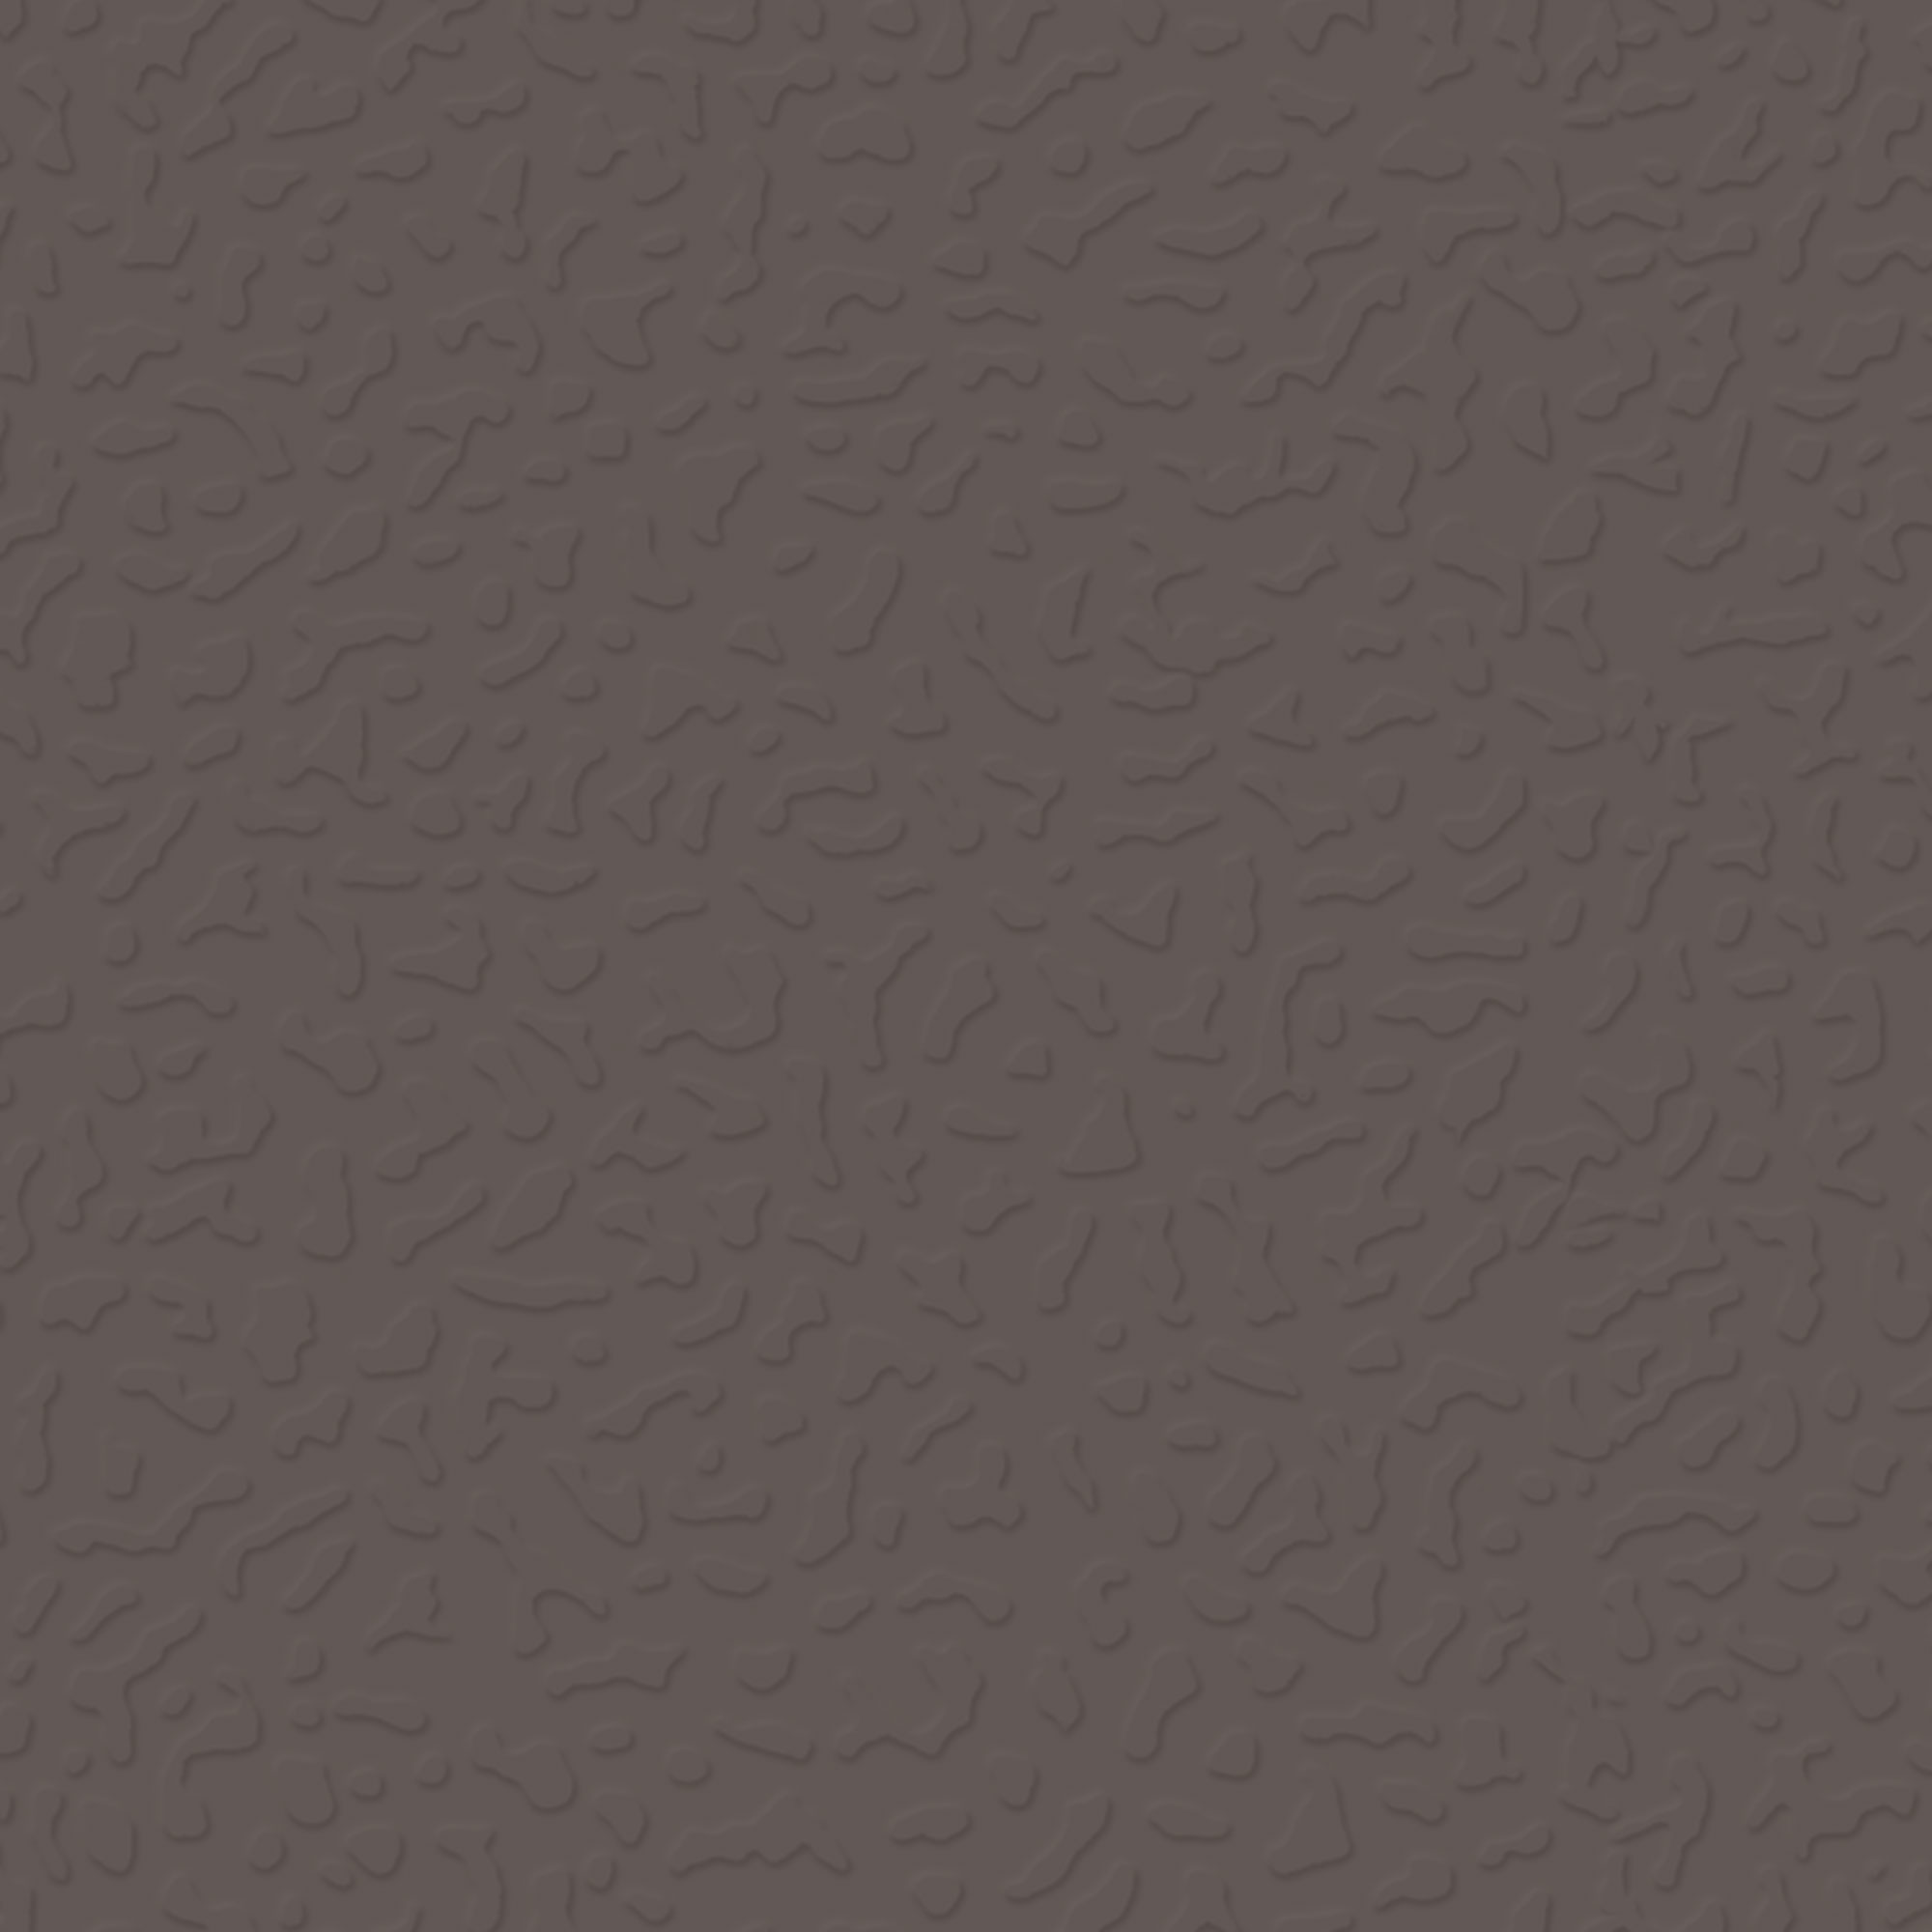 Roppe Rubber Tile 900 - Textured Design (993) Burnt Umber LB996194